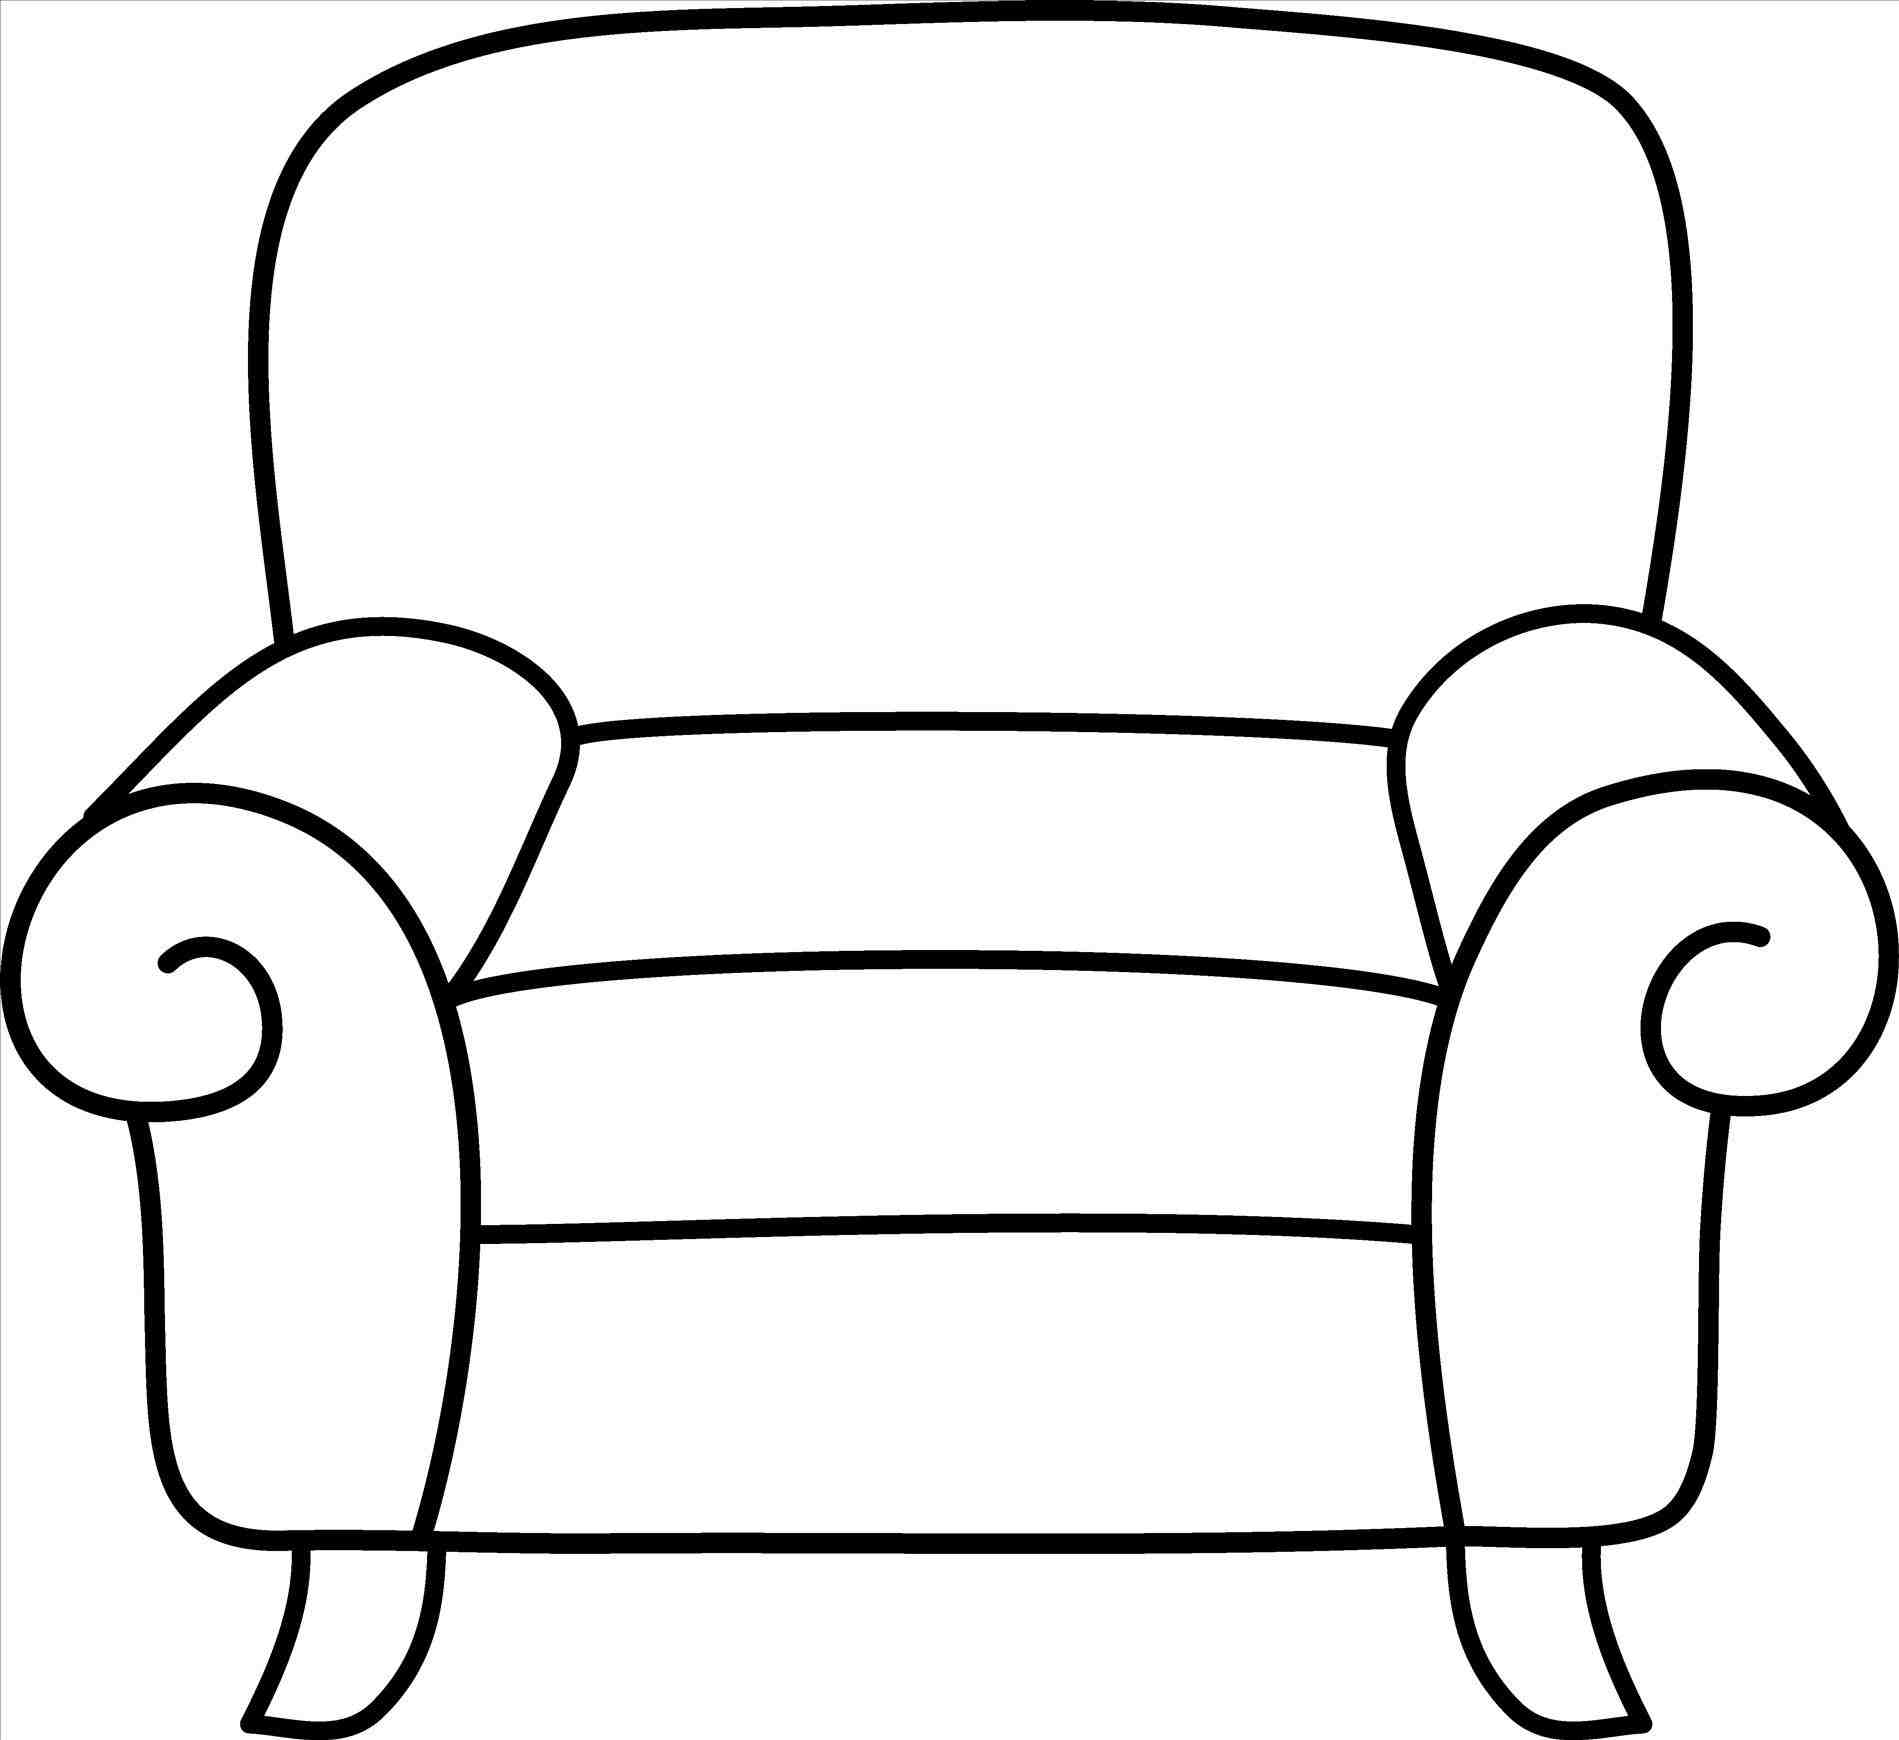 Loading clipart black and white Black its in bunk white